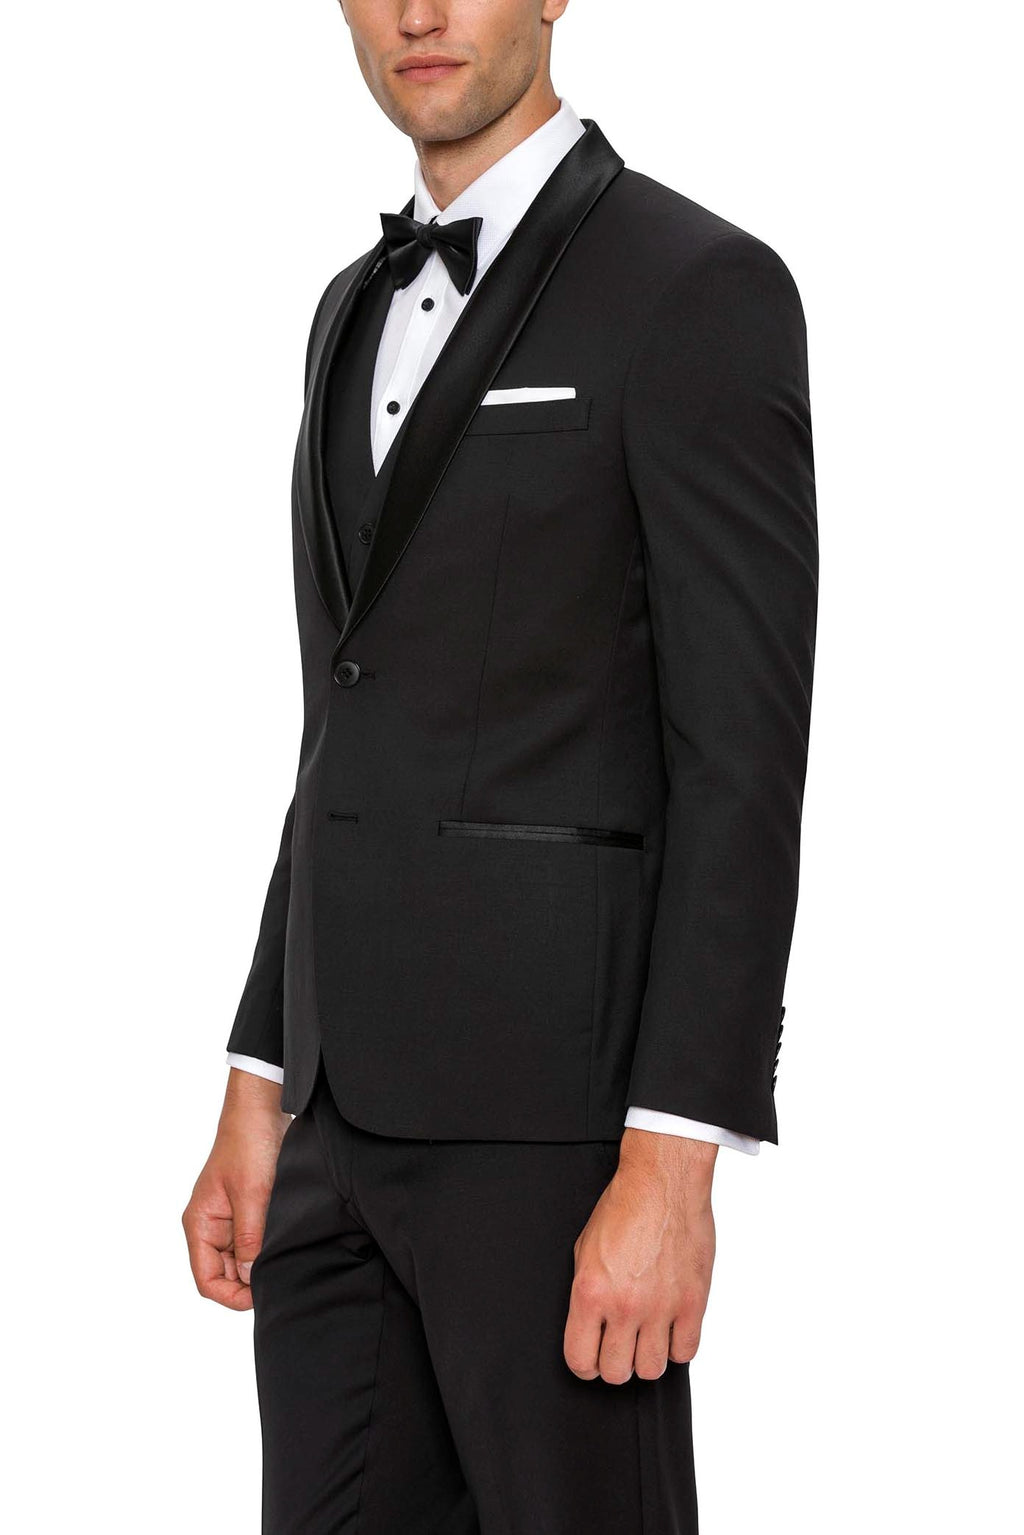 Gibson Spectre 2pce Dinner Suit - Ignition For Men